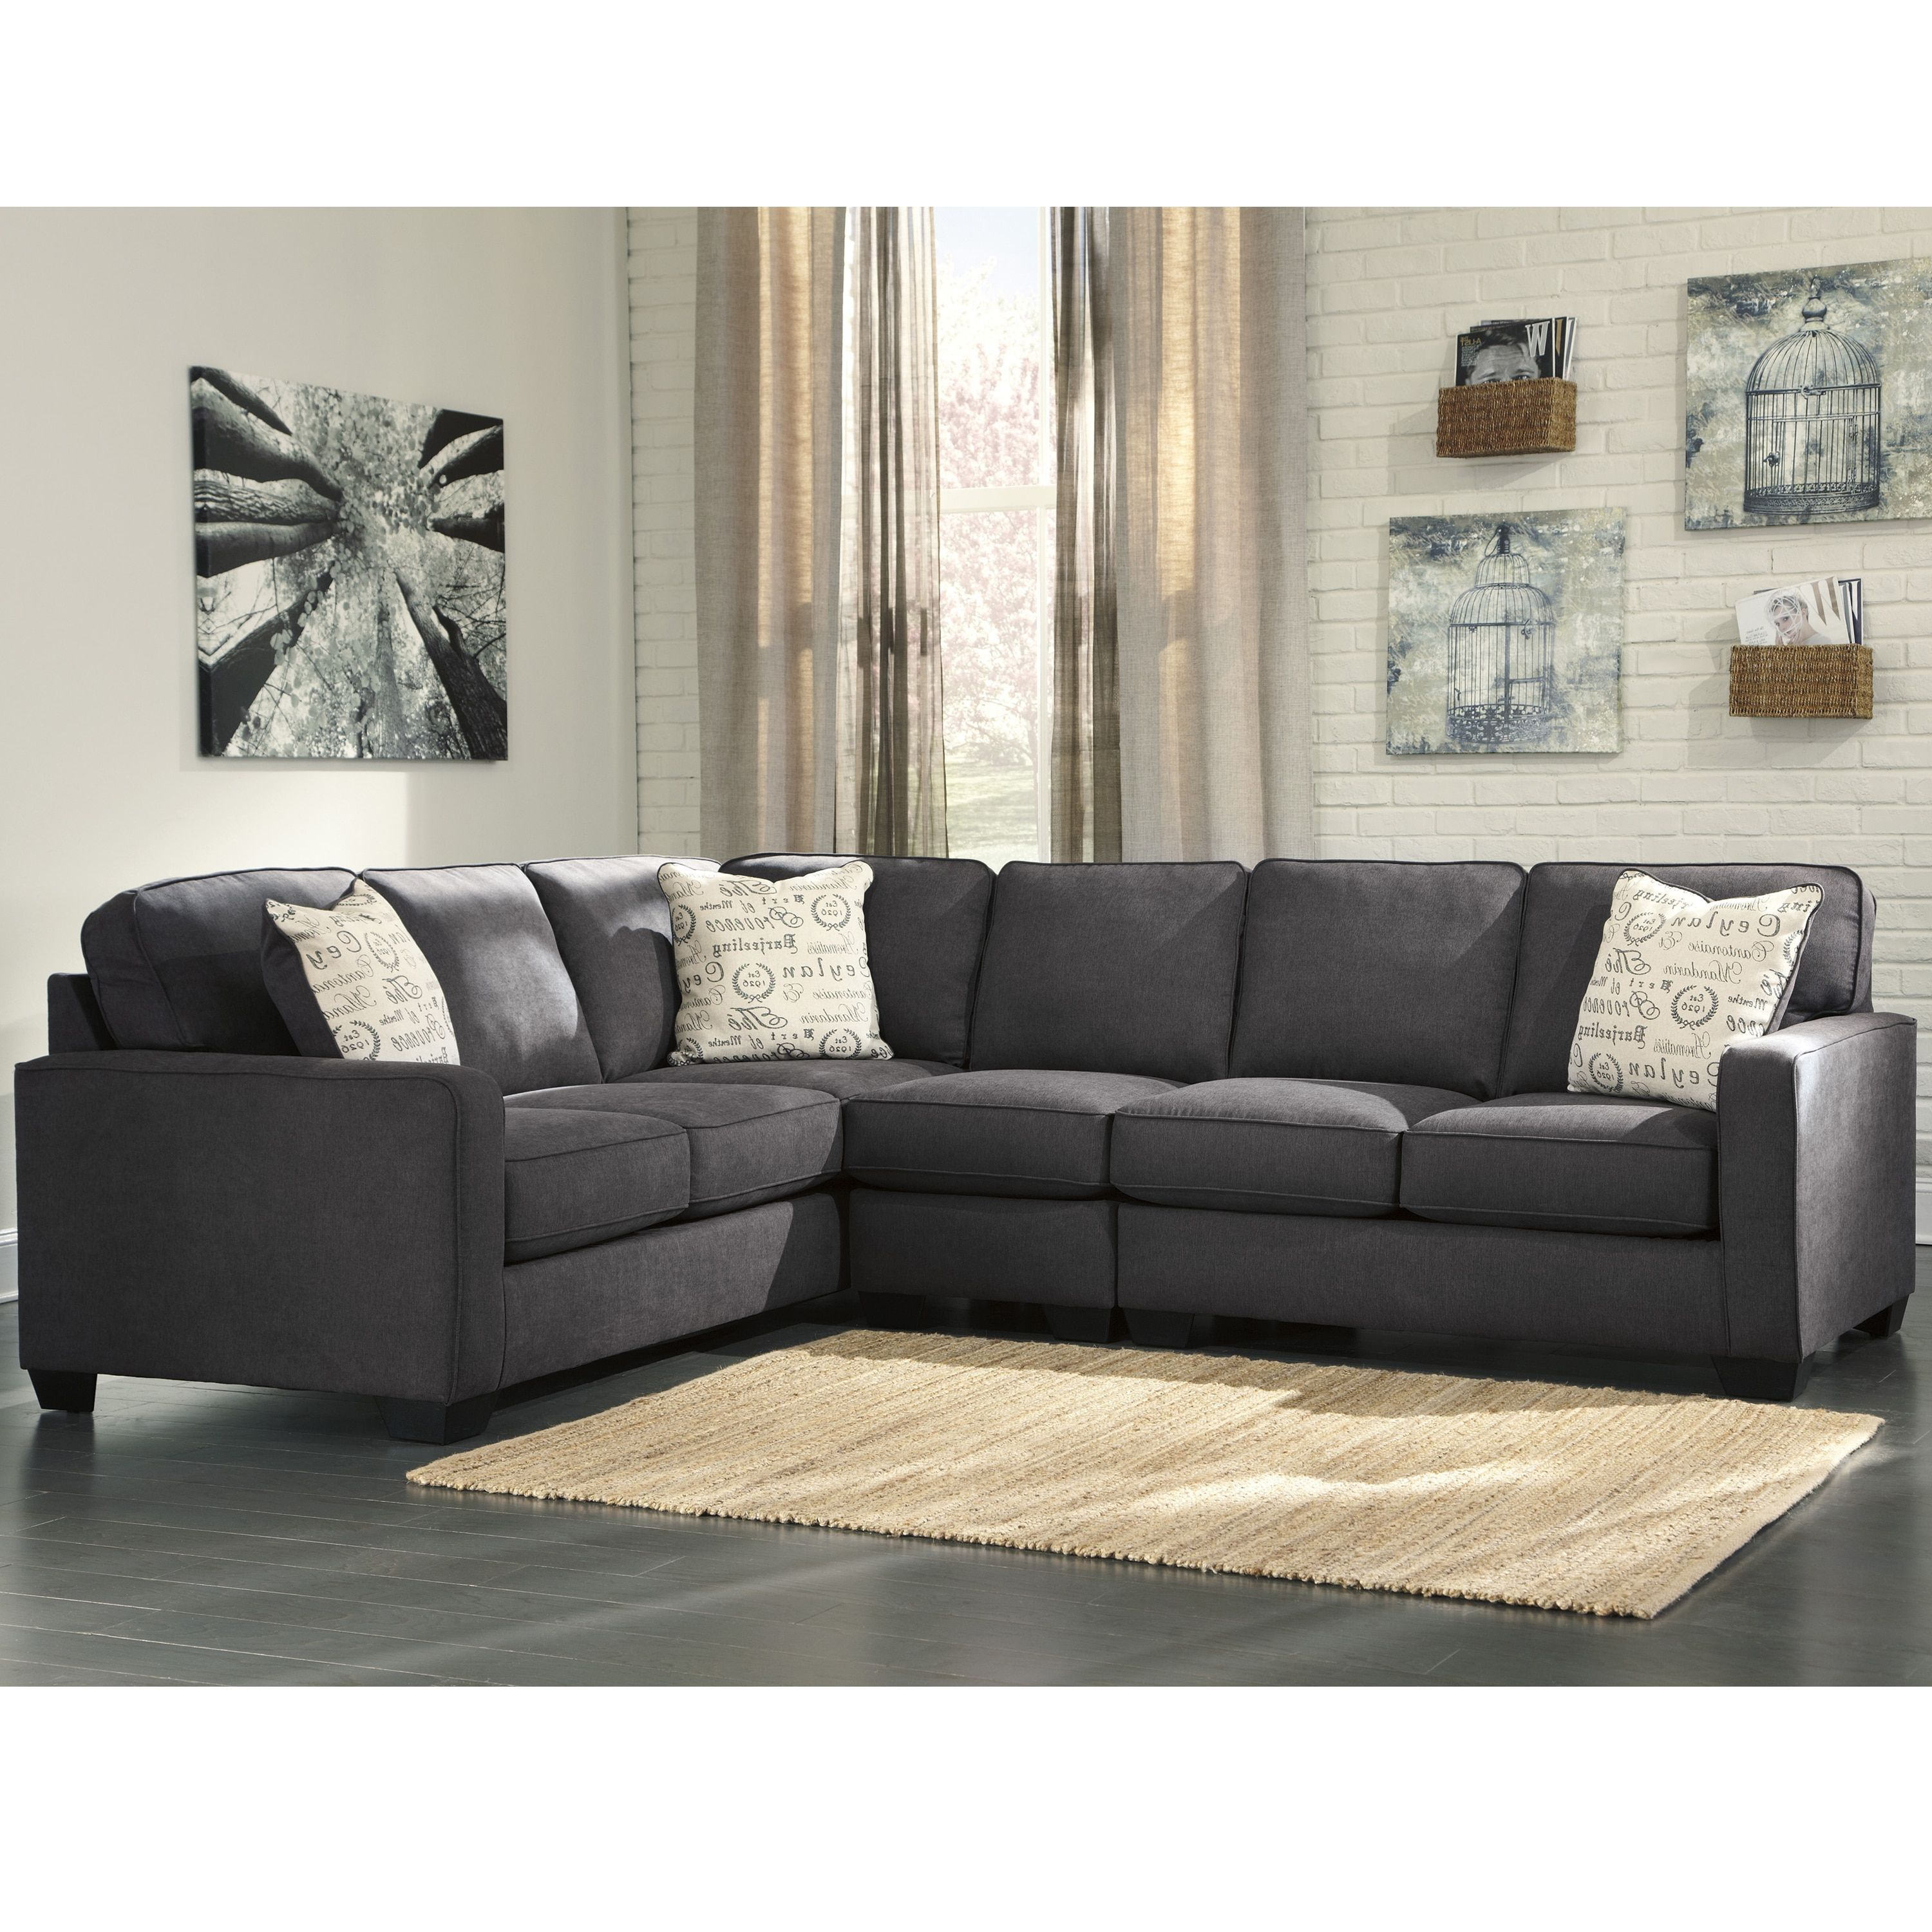 Larusi 2 Piece Raf Sectional Living Room Ideas In 2019 Room